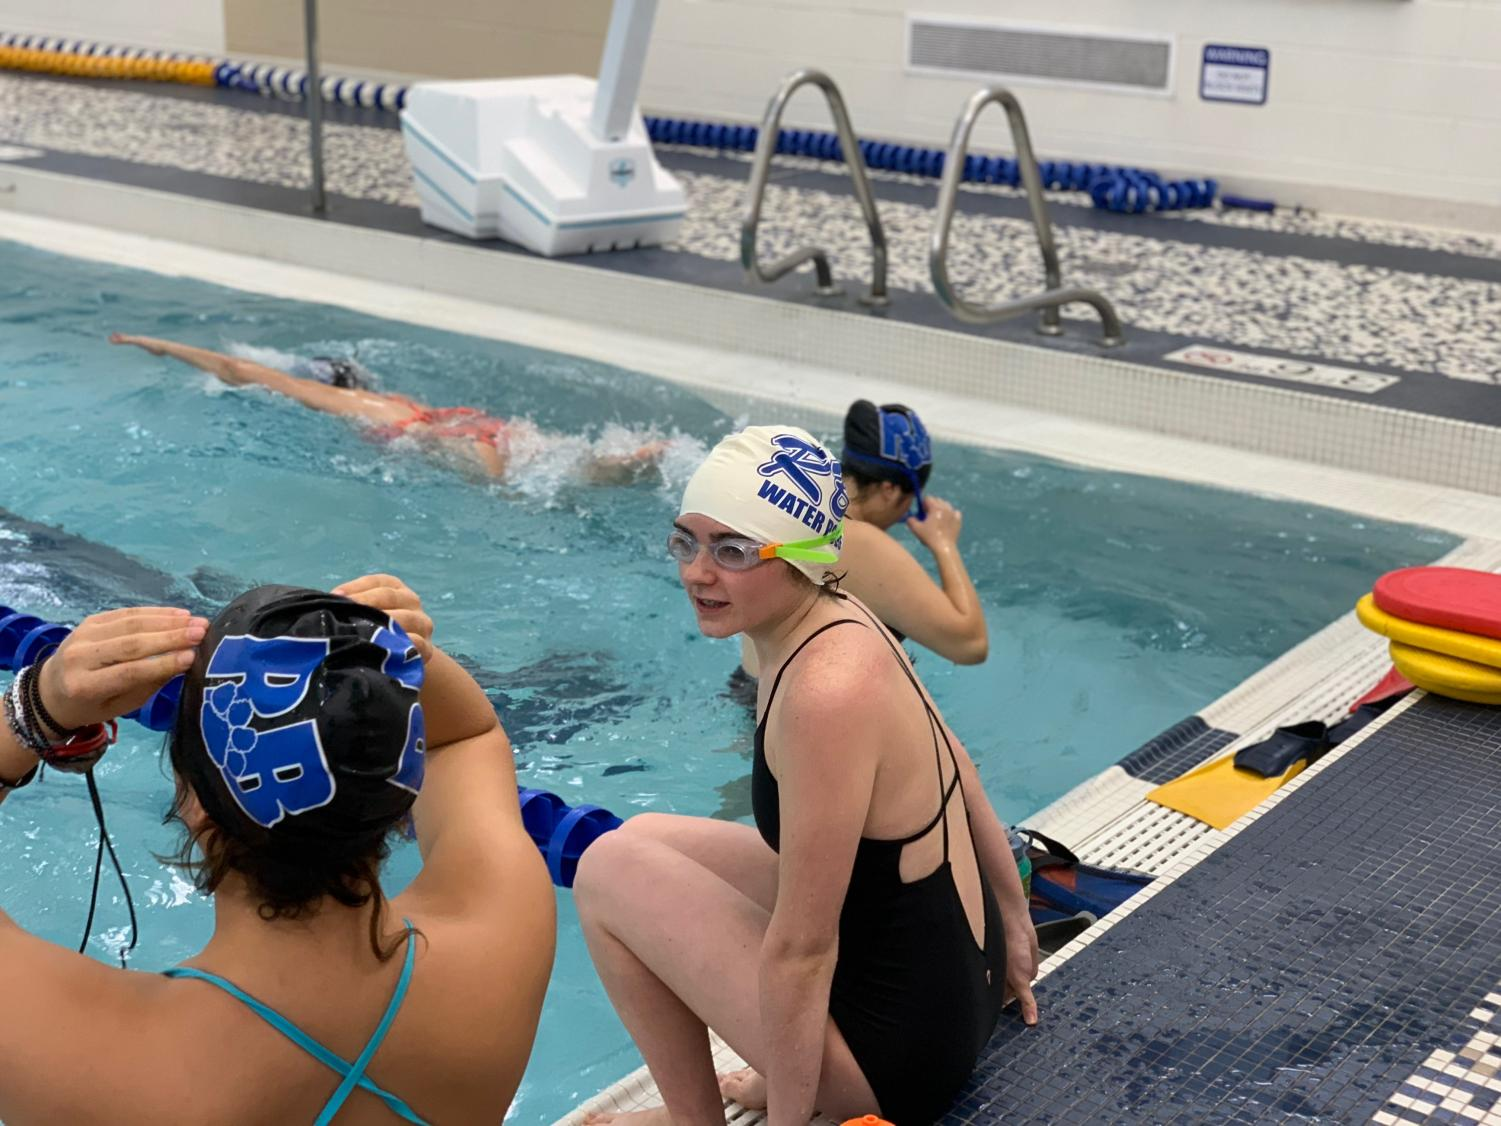 Bella anxiously entering the pool during practice.